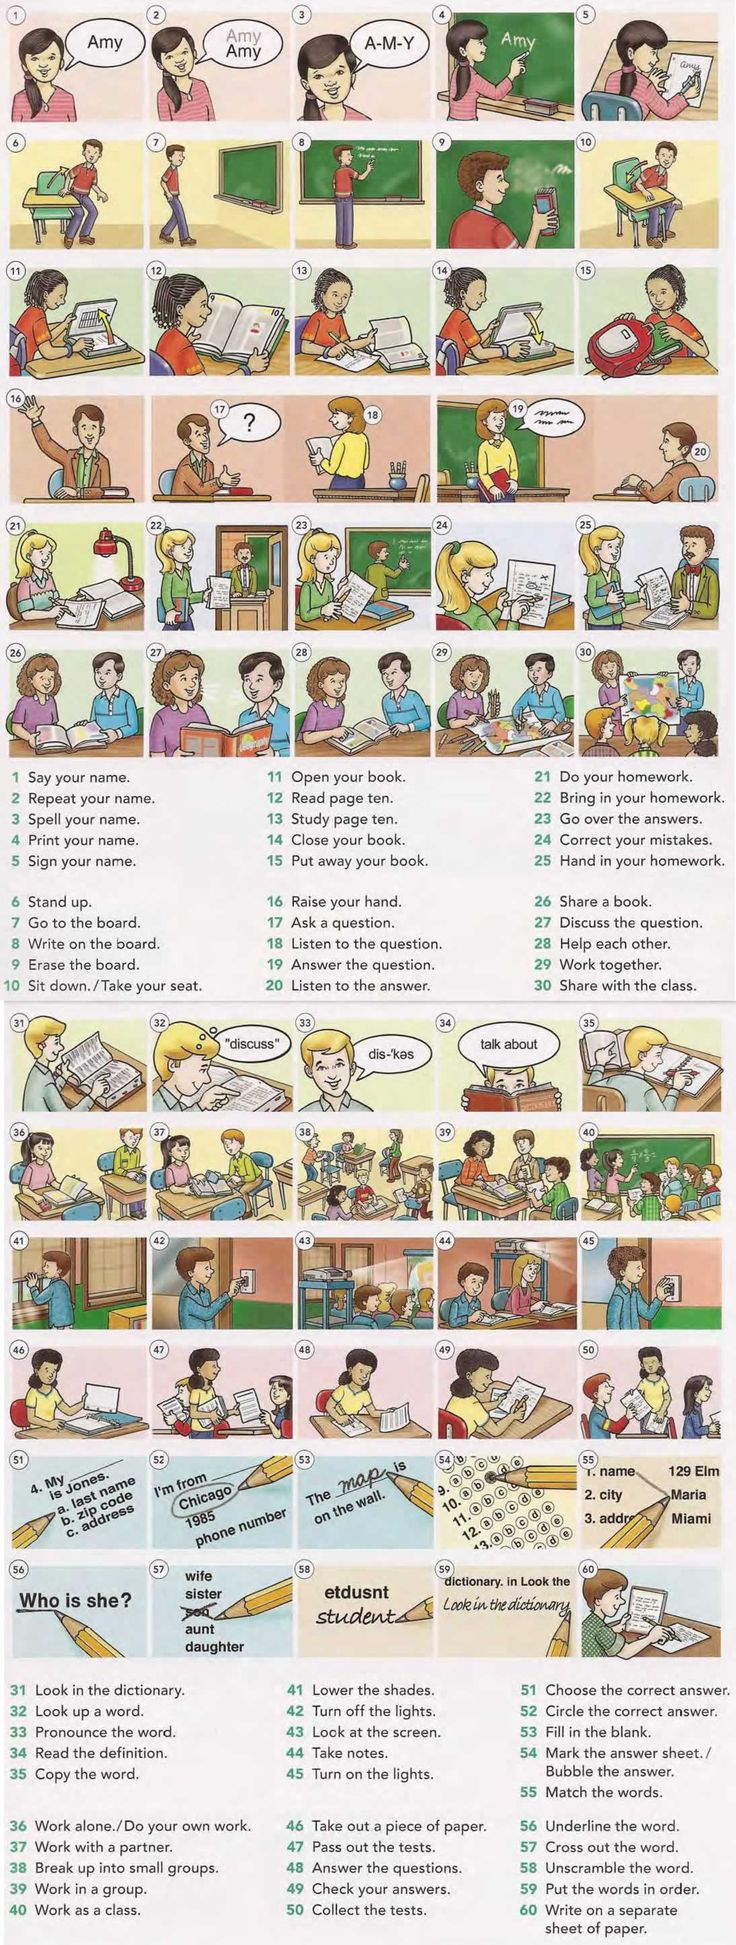 Learning English Vocabulary and Grammar|Classroom Commands for a Teacher. This…